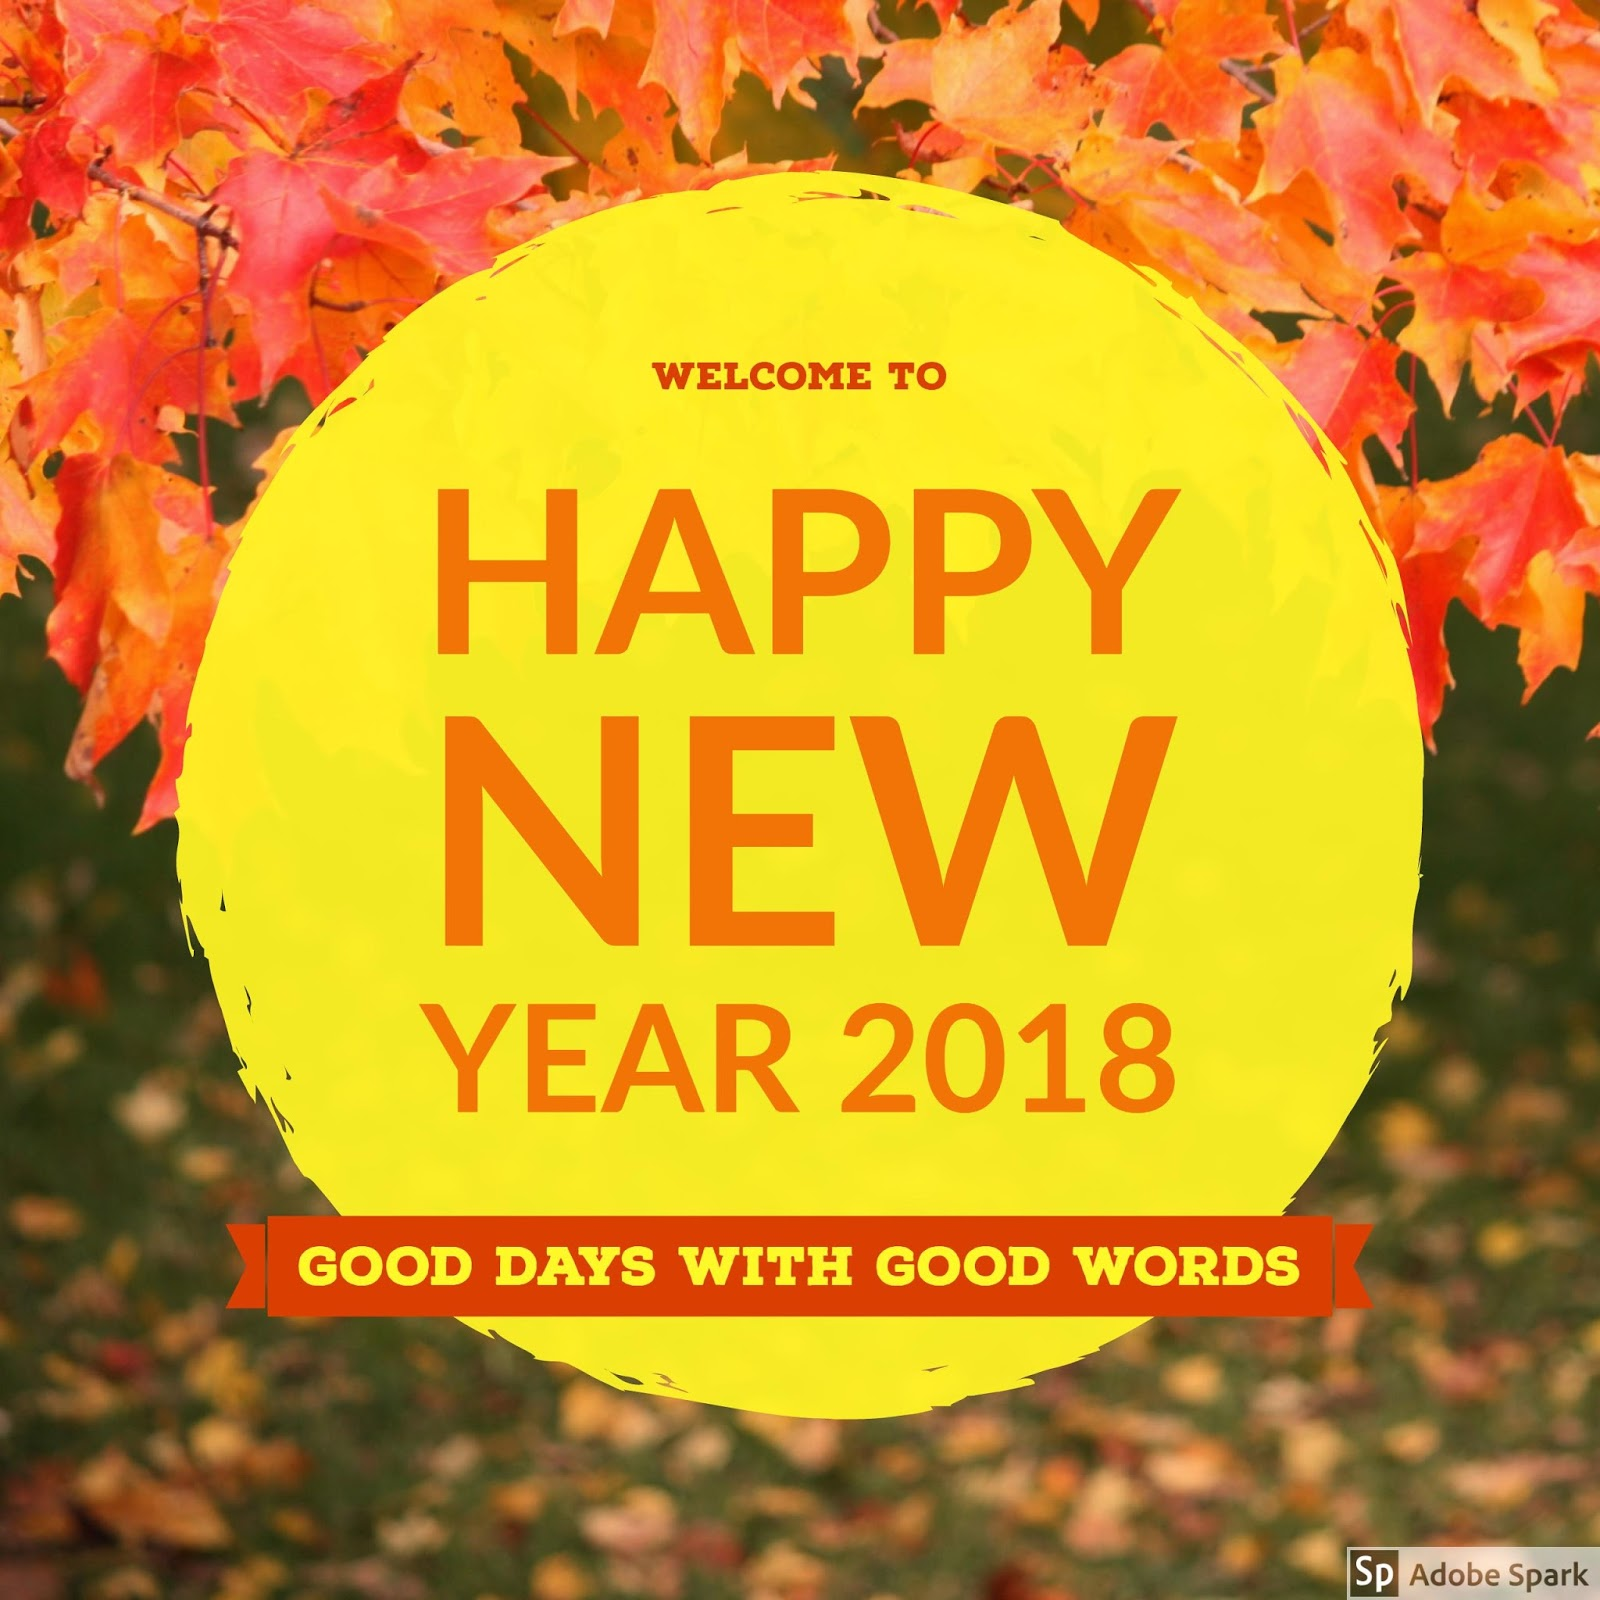 Telugu Picture Messages New Year Greetings 2018 Sample